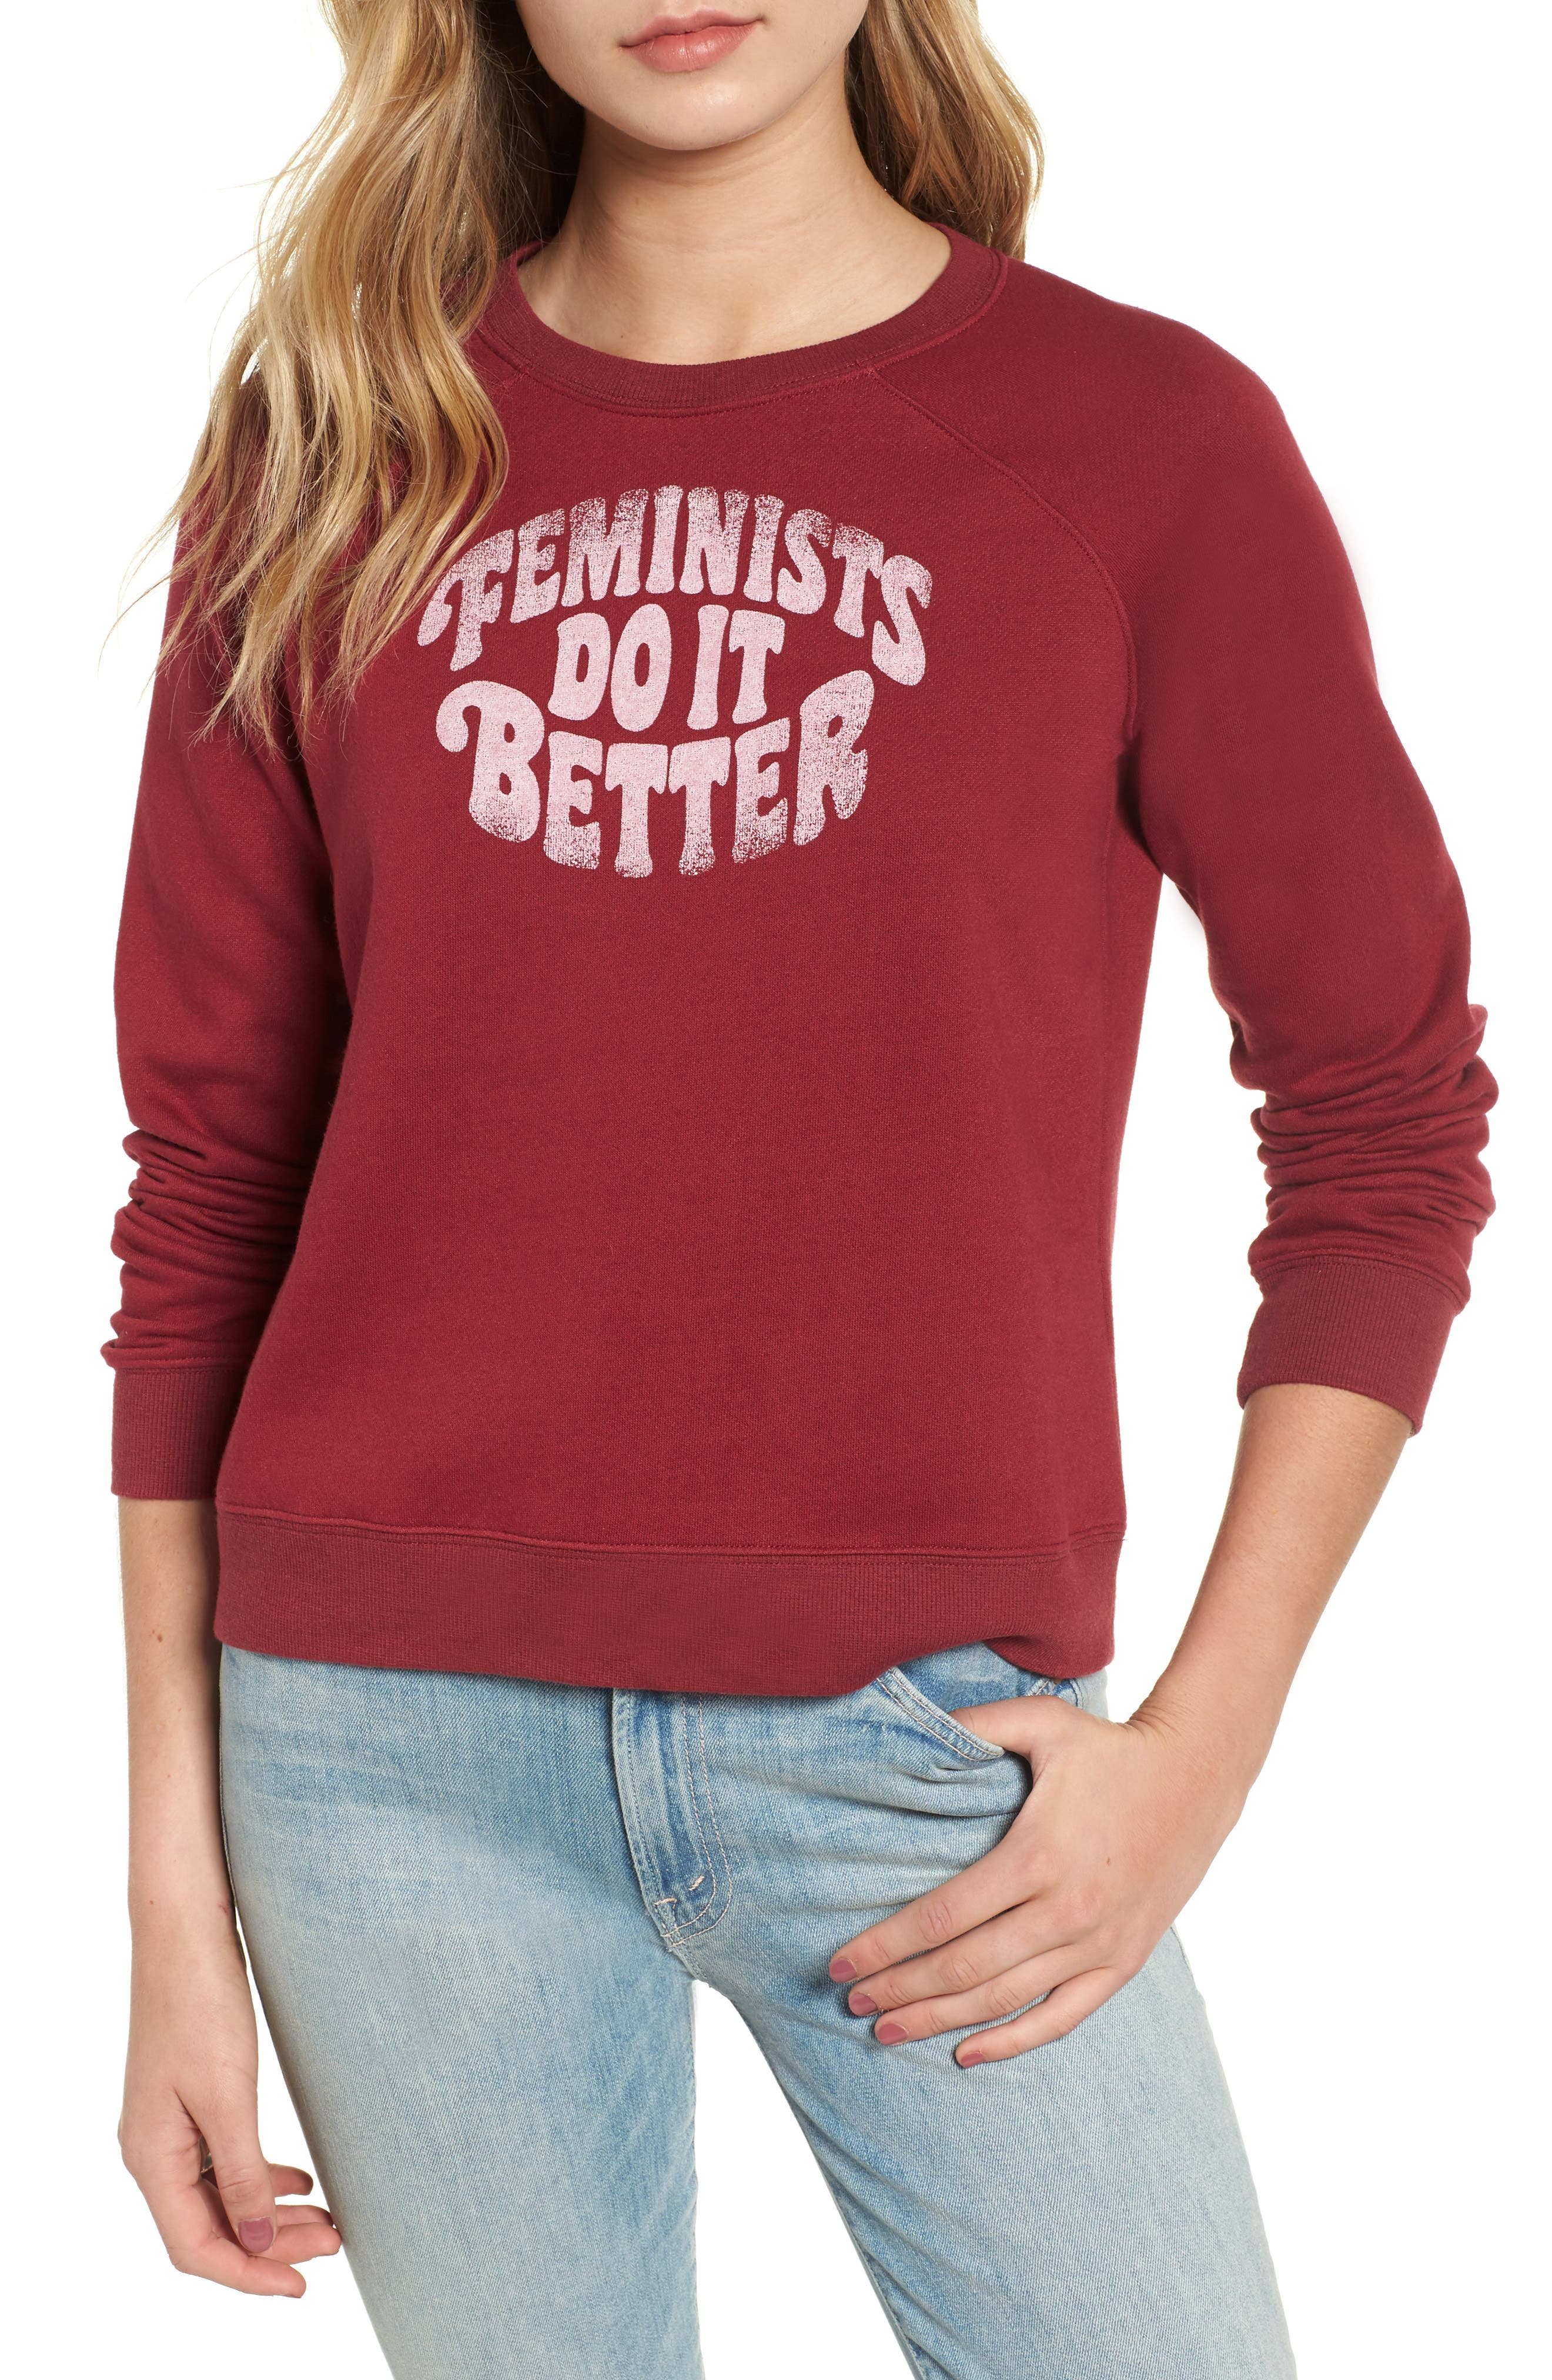 Jennings Feminists Do It Better Sweatshirt,                         Main,                         color, DARK RED/ WHITE